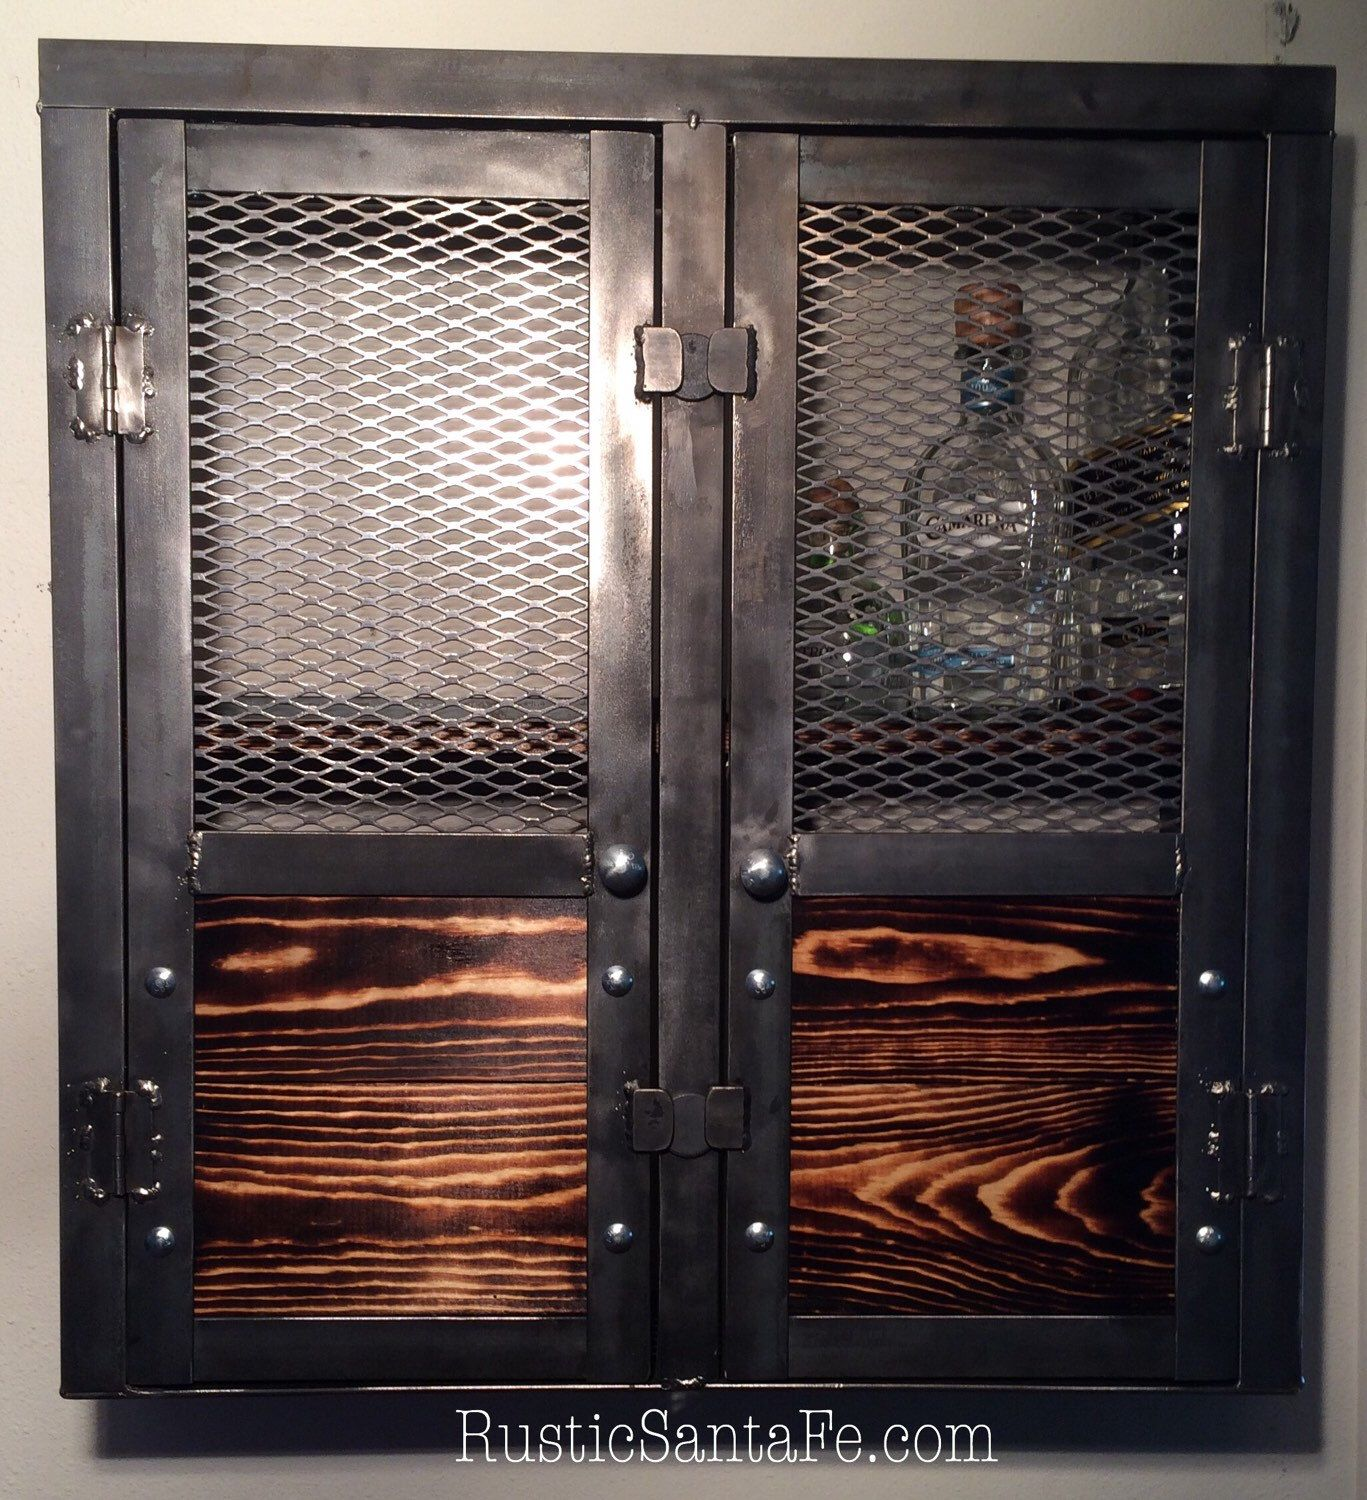 Pin By Rusticsantafe On Industrial Furniture By